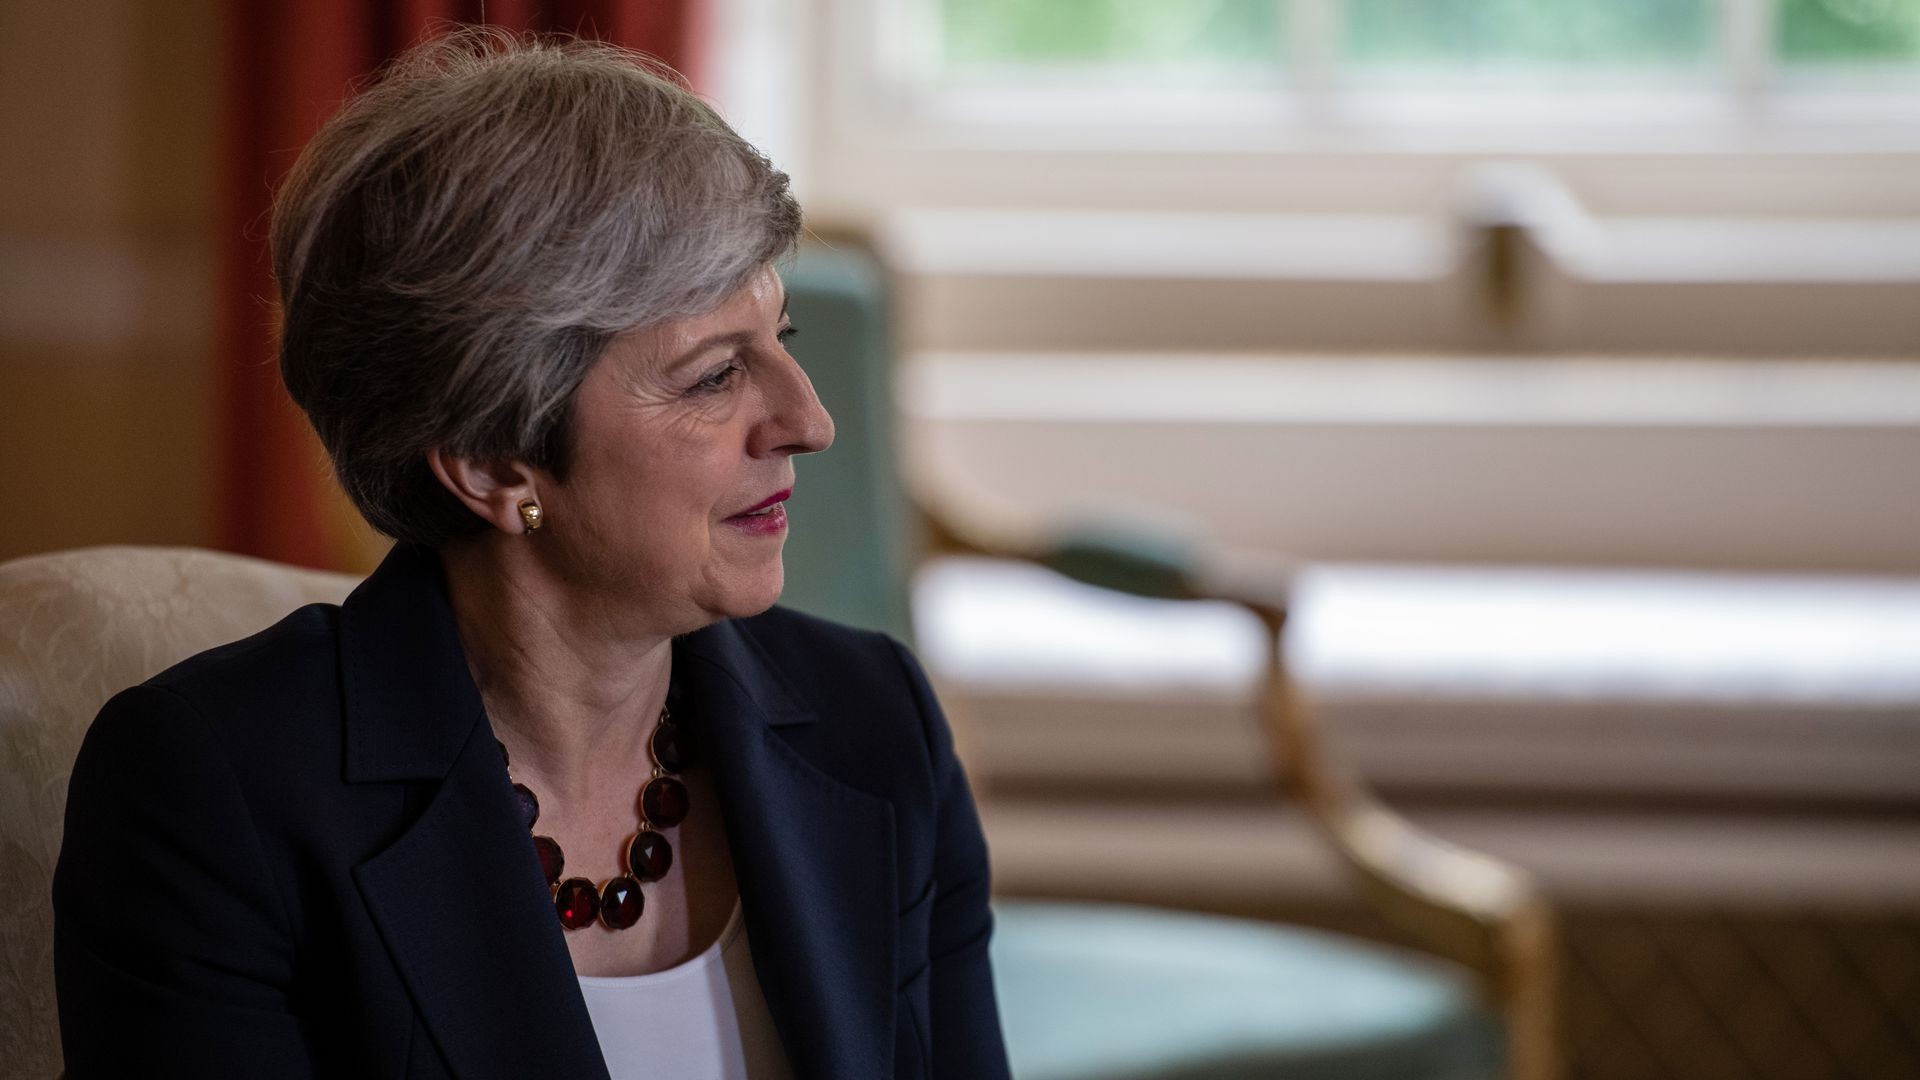 In this image, Theresa May sits and listens to someone speaking to her right.